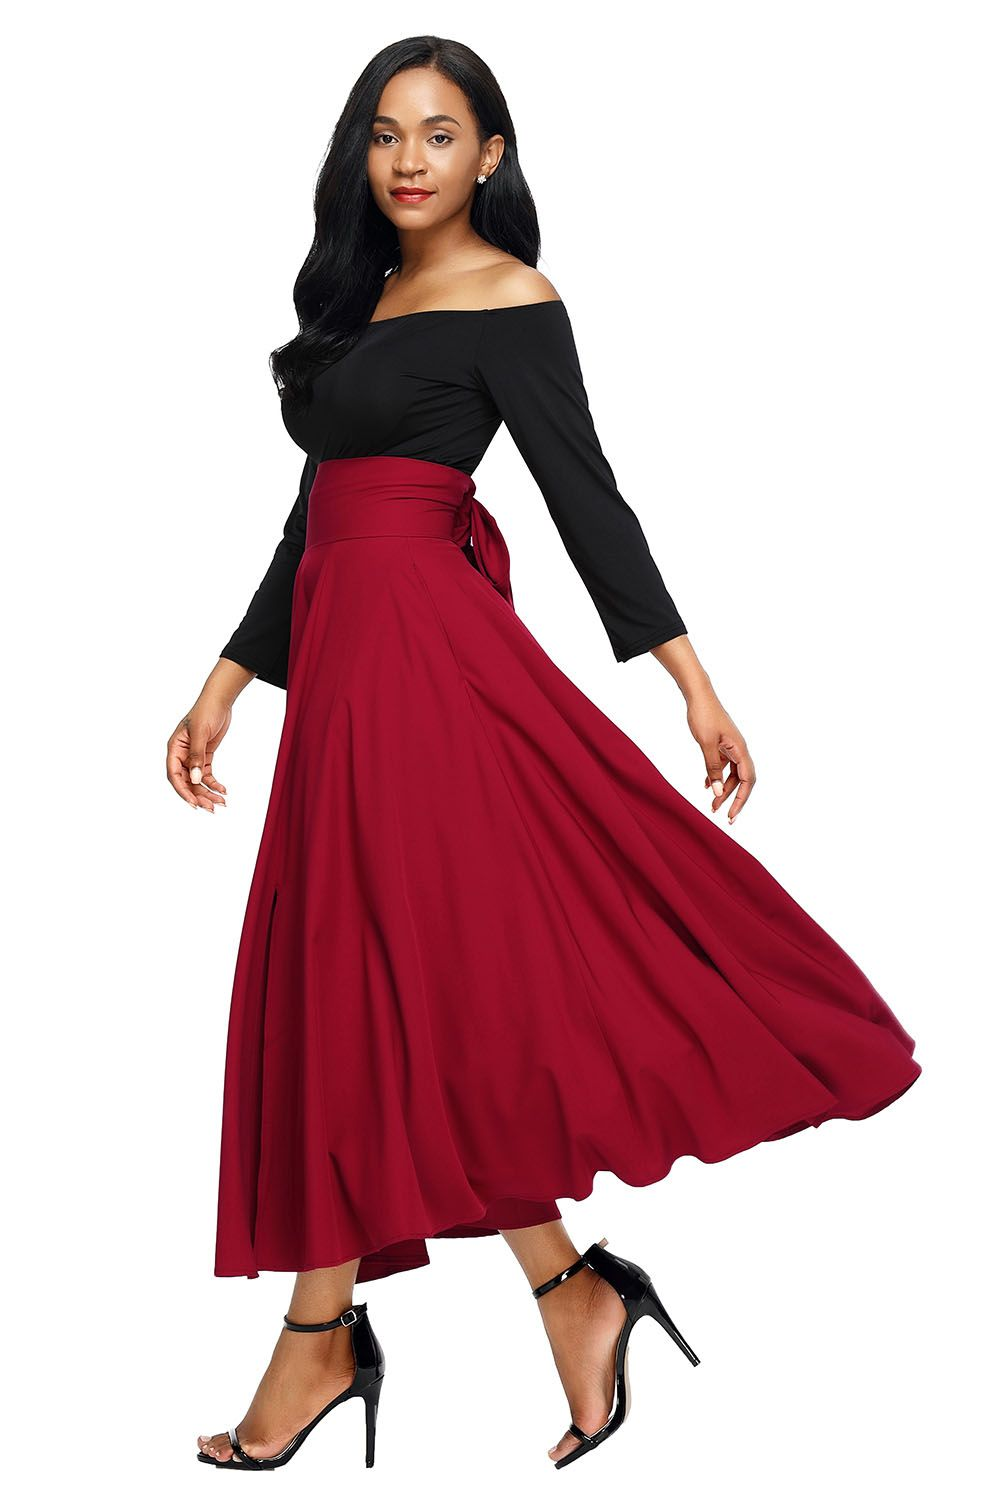 Red Belted Retro High Waist Pleated Skirt Maxi